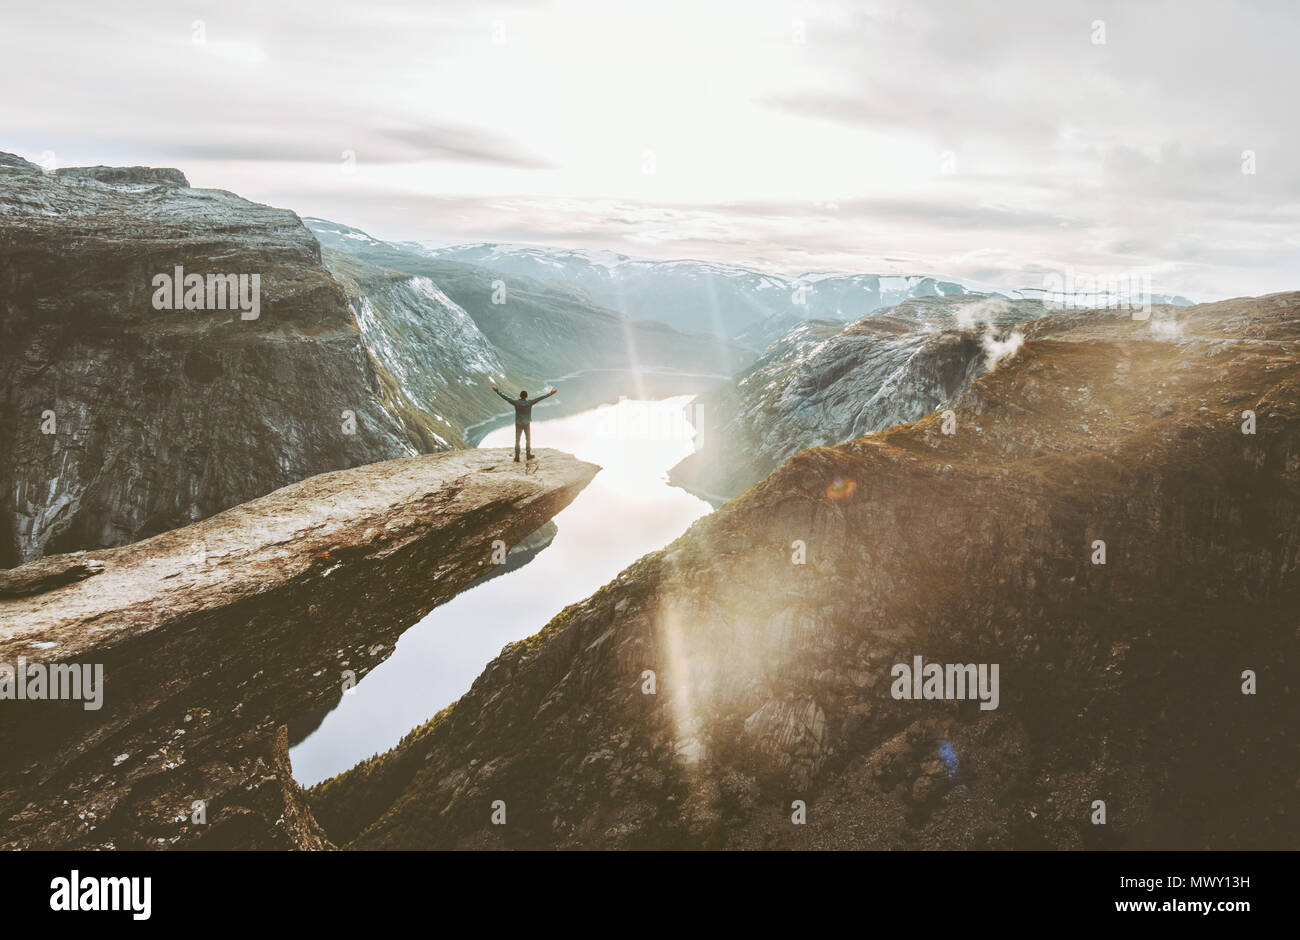 Man on Trolltunga cliff edge happy raised hands traveling in Norway adventure lifestyle extreme vacations outdoor sunset mountains landscape aerial vi - Stock Image